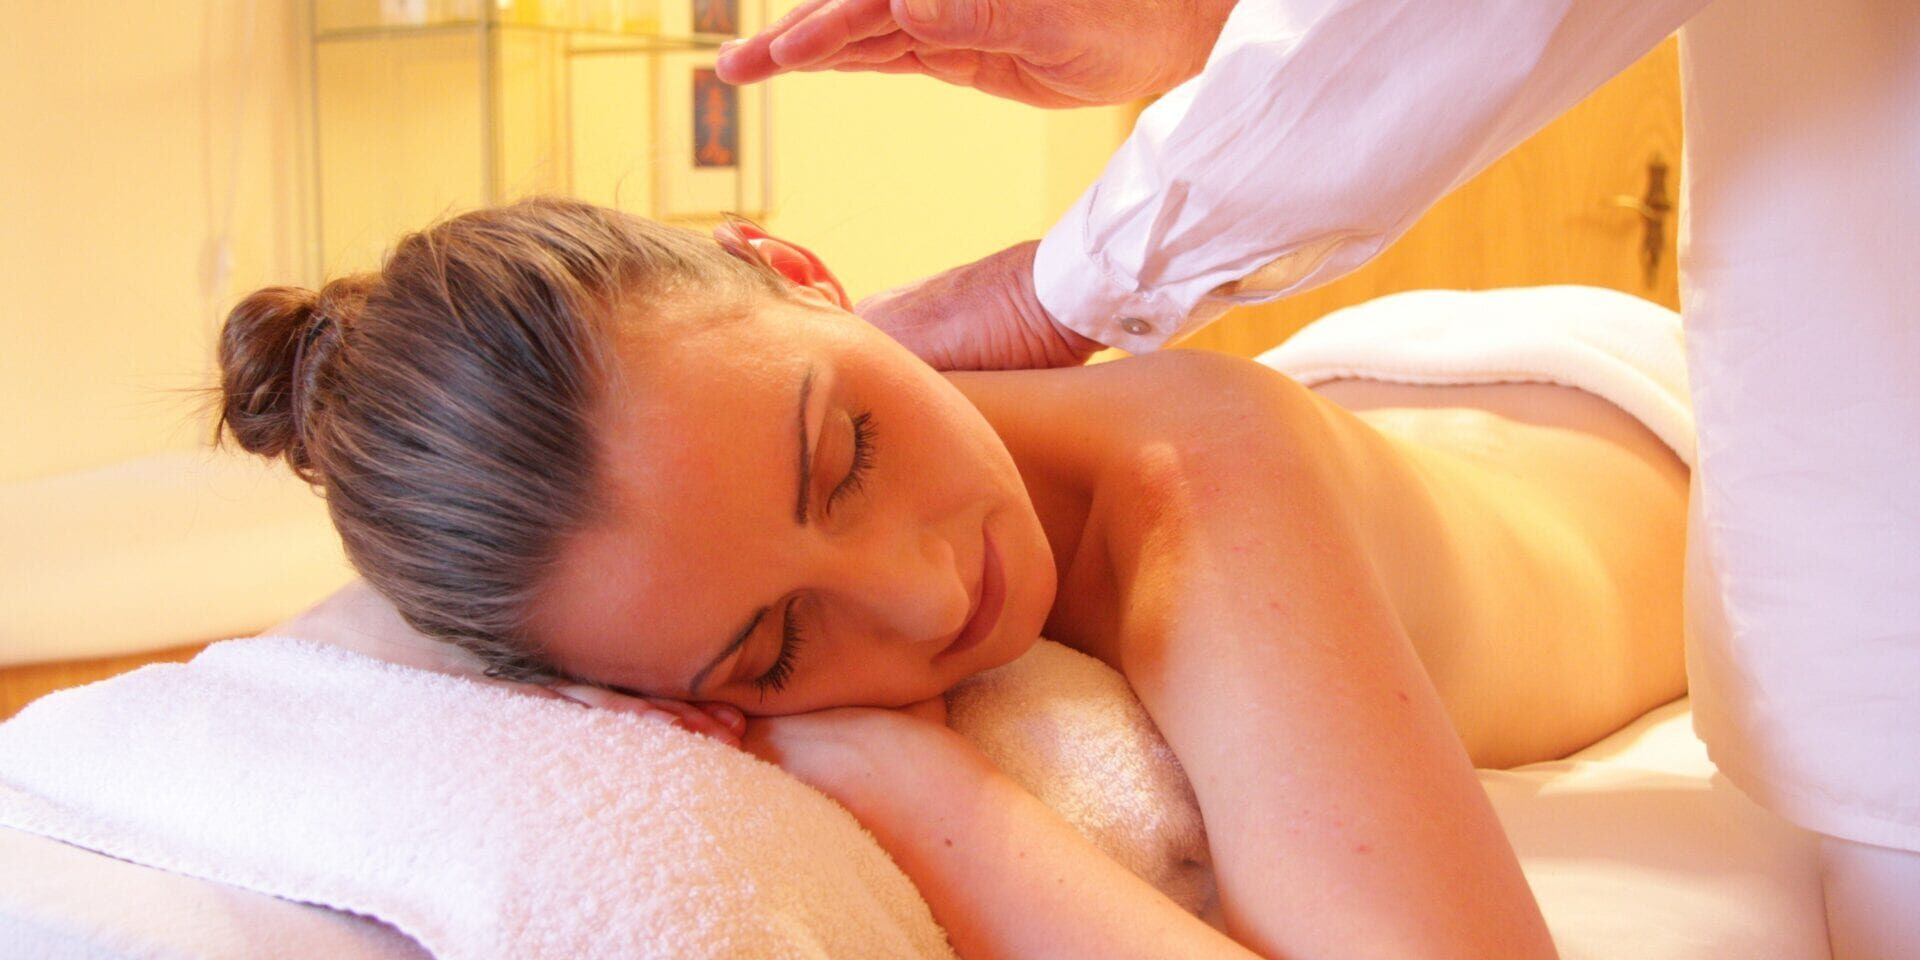 woman-relaxing-relax-spa-56884